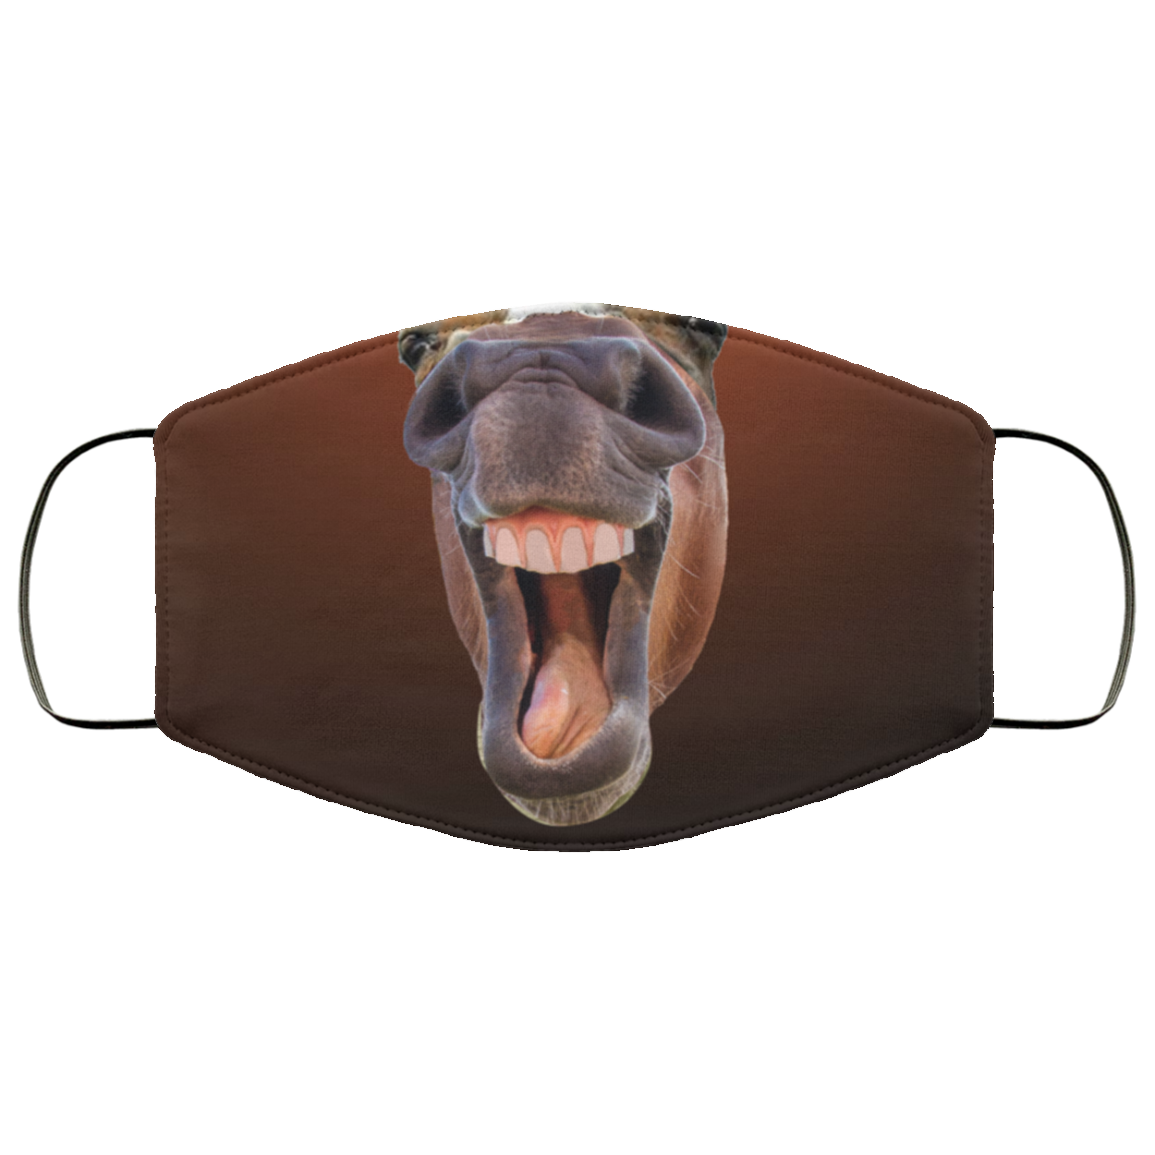 Funny Horse Laughing Face Gift Mask Cubebik